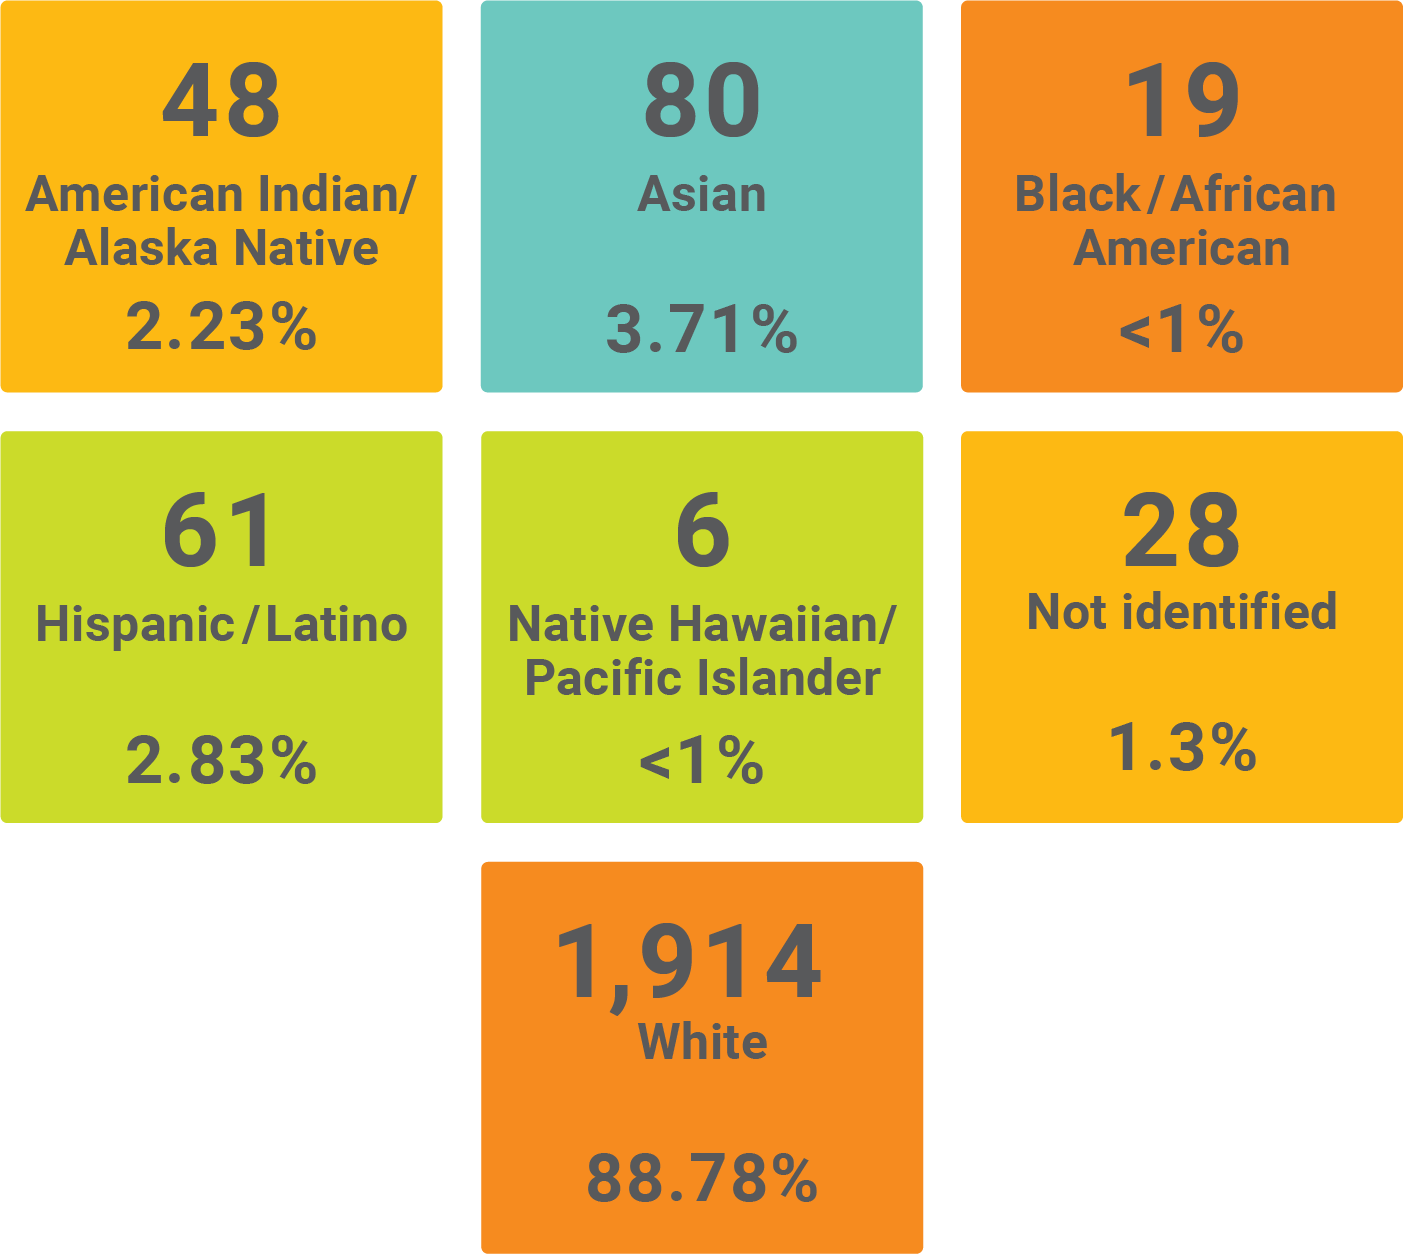 Graphic showing the demographics of staff by race and ethnicity. American Indian/Alaska Native with 48 at 2.23%, Asian with 80 at 3.71%, Black/African American with 19 at less than 1%, Hispanic/Latino with 61 at 2.83%, Native Hawaiian/Pacific Islander with 6 at less than 1%, Not Identified with 28 at 1.3%, and White with 1,914 at 88.78%.